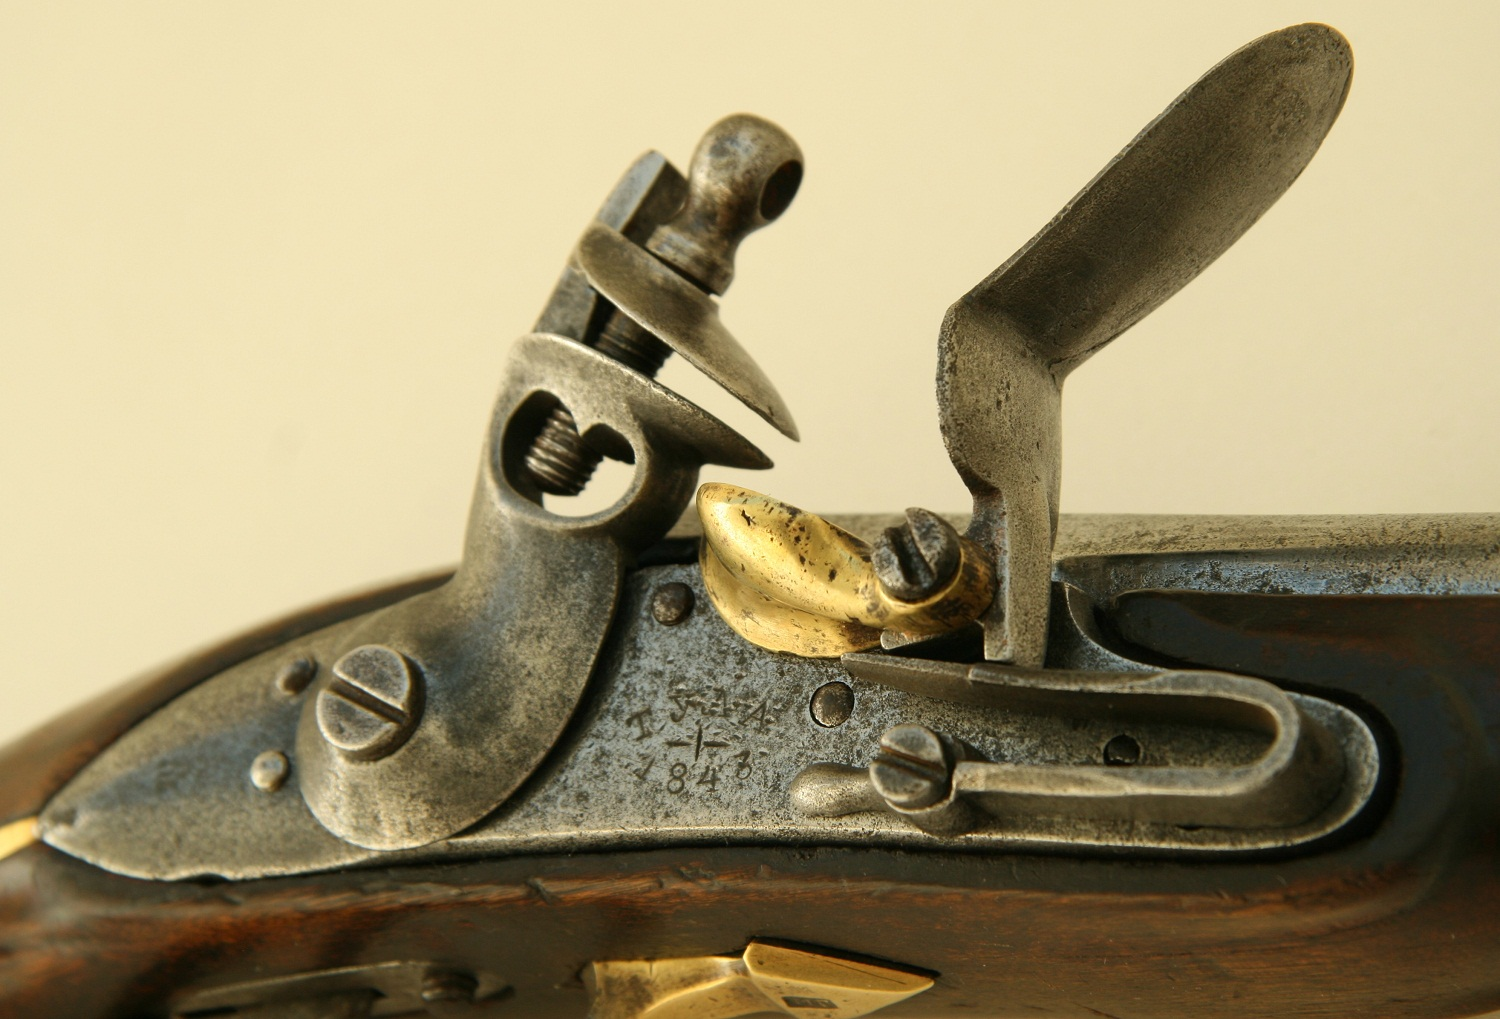 The Pattern 1839 Russian cavalry flint pistol